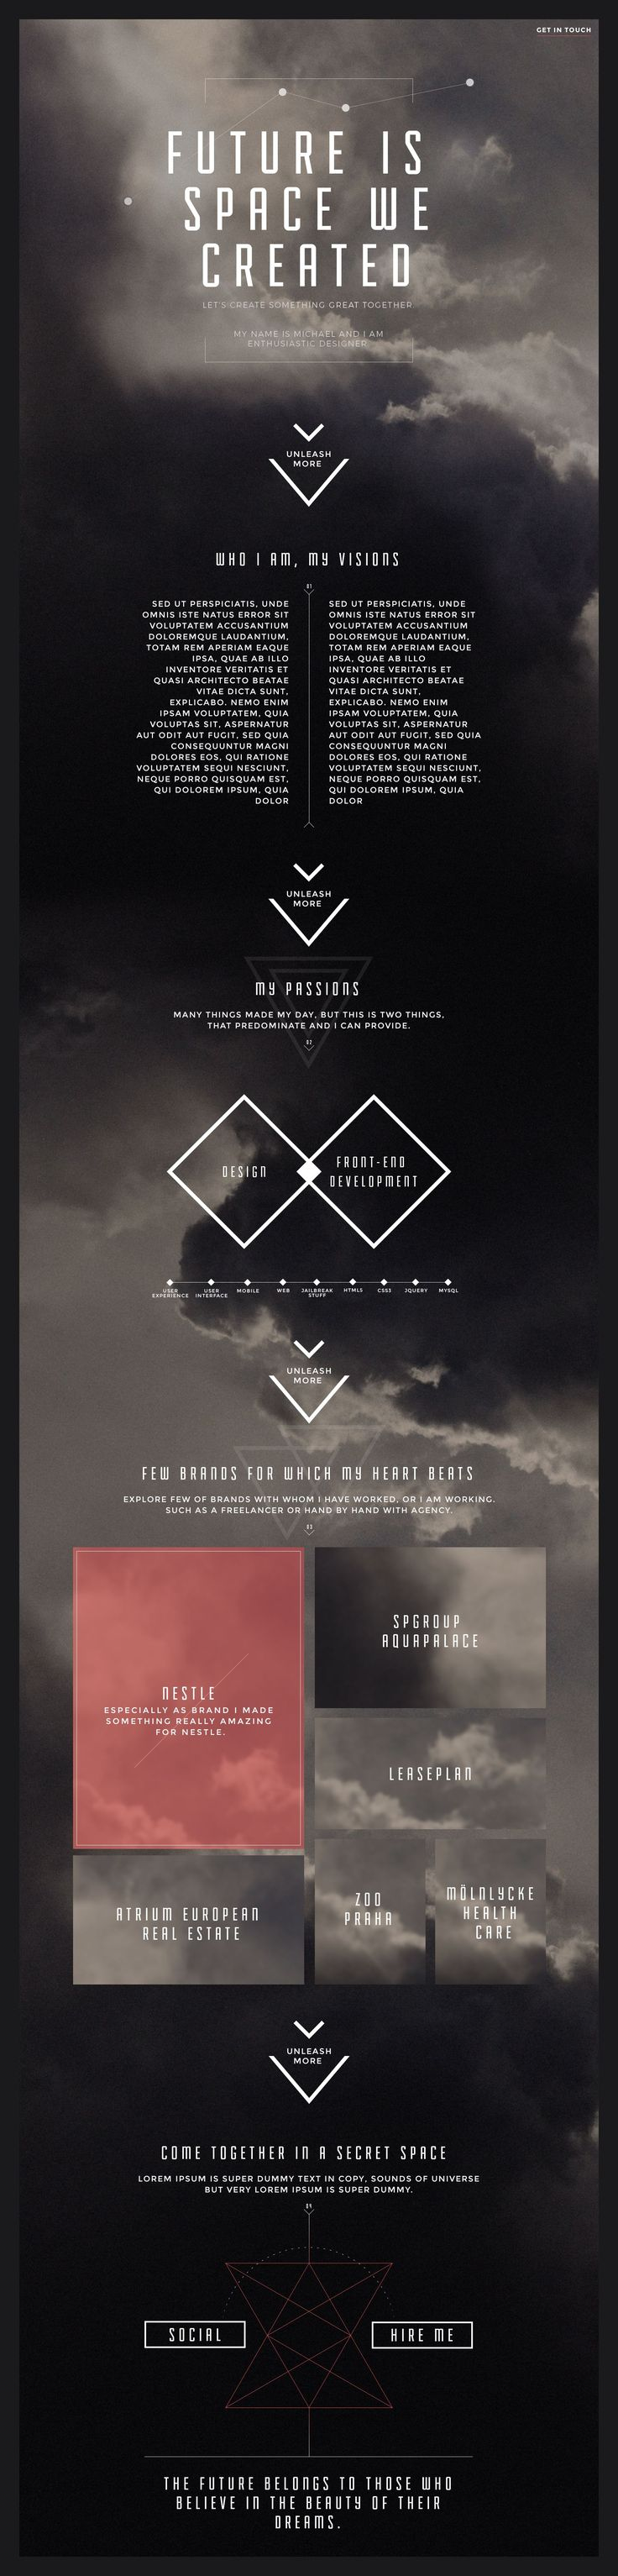 1427 best Design images on Pinterest   Page layout, Editorial design ...